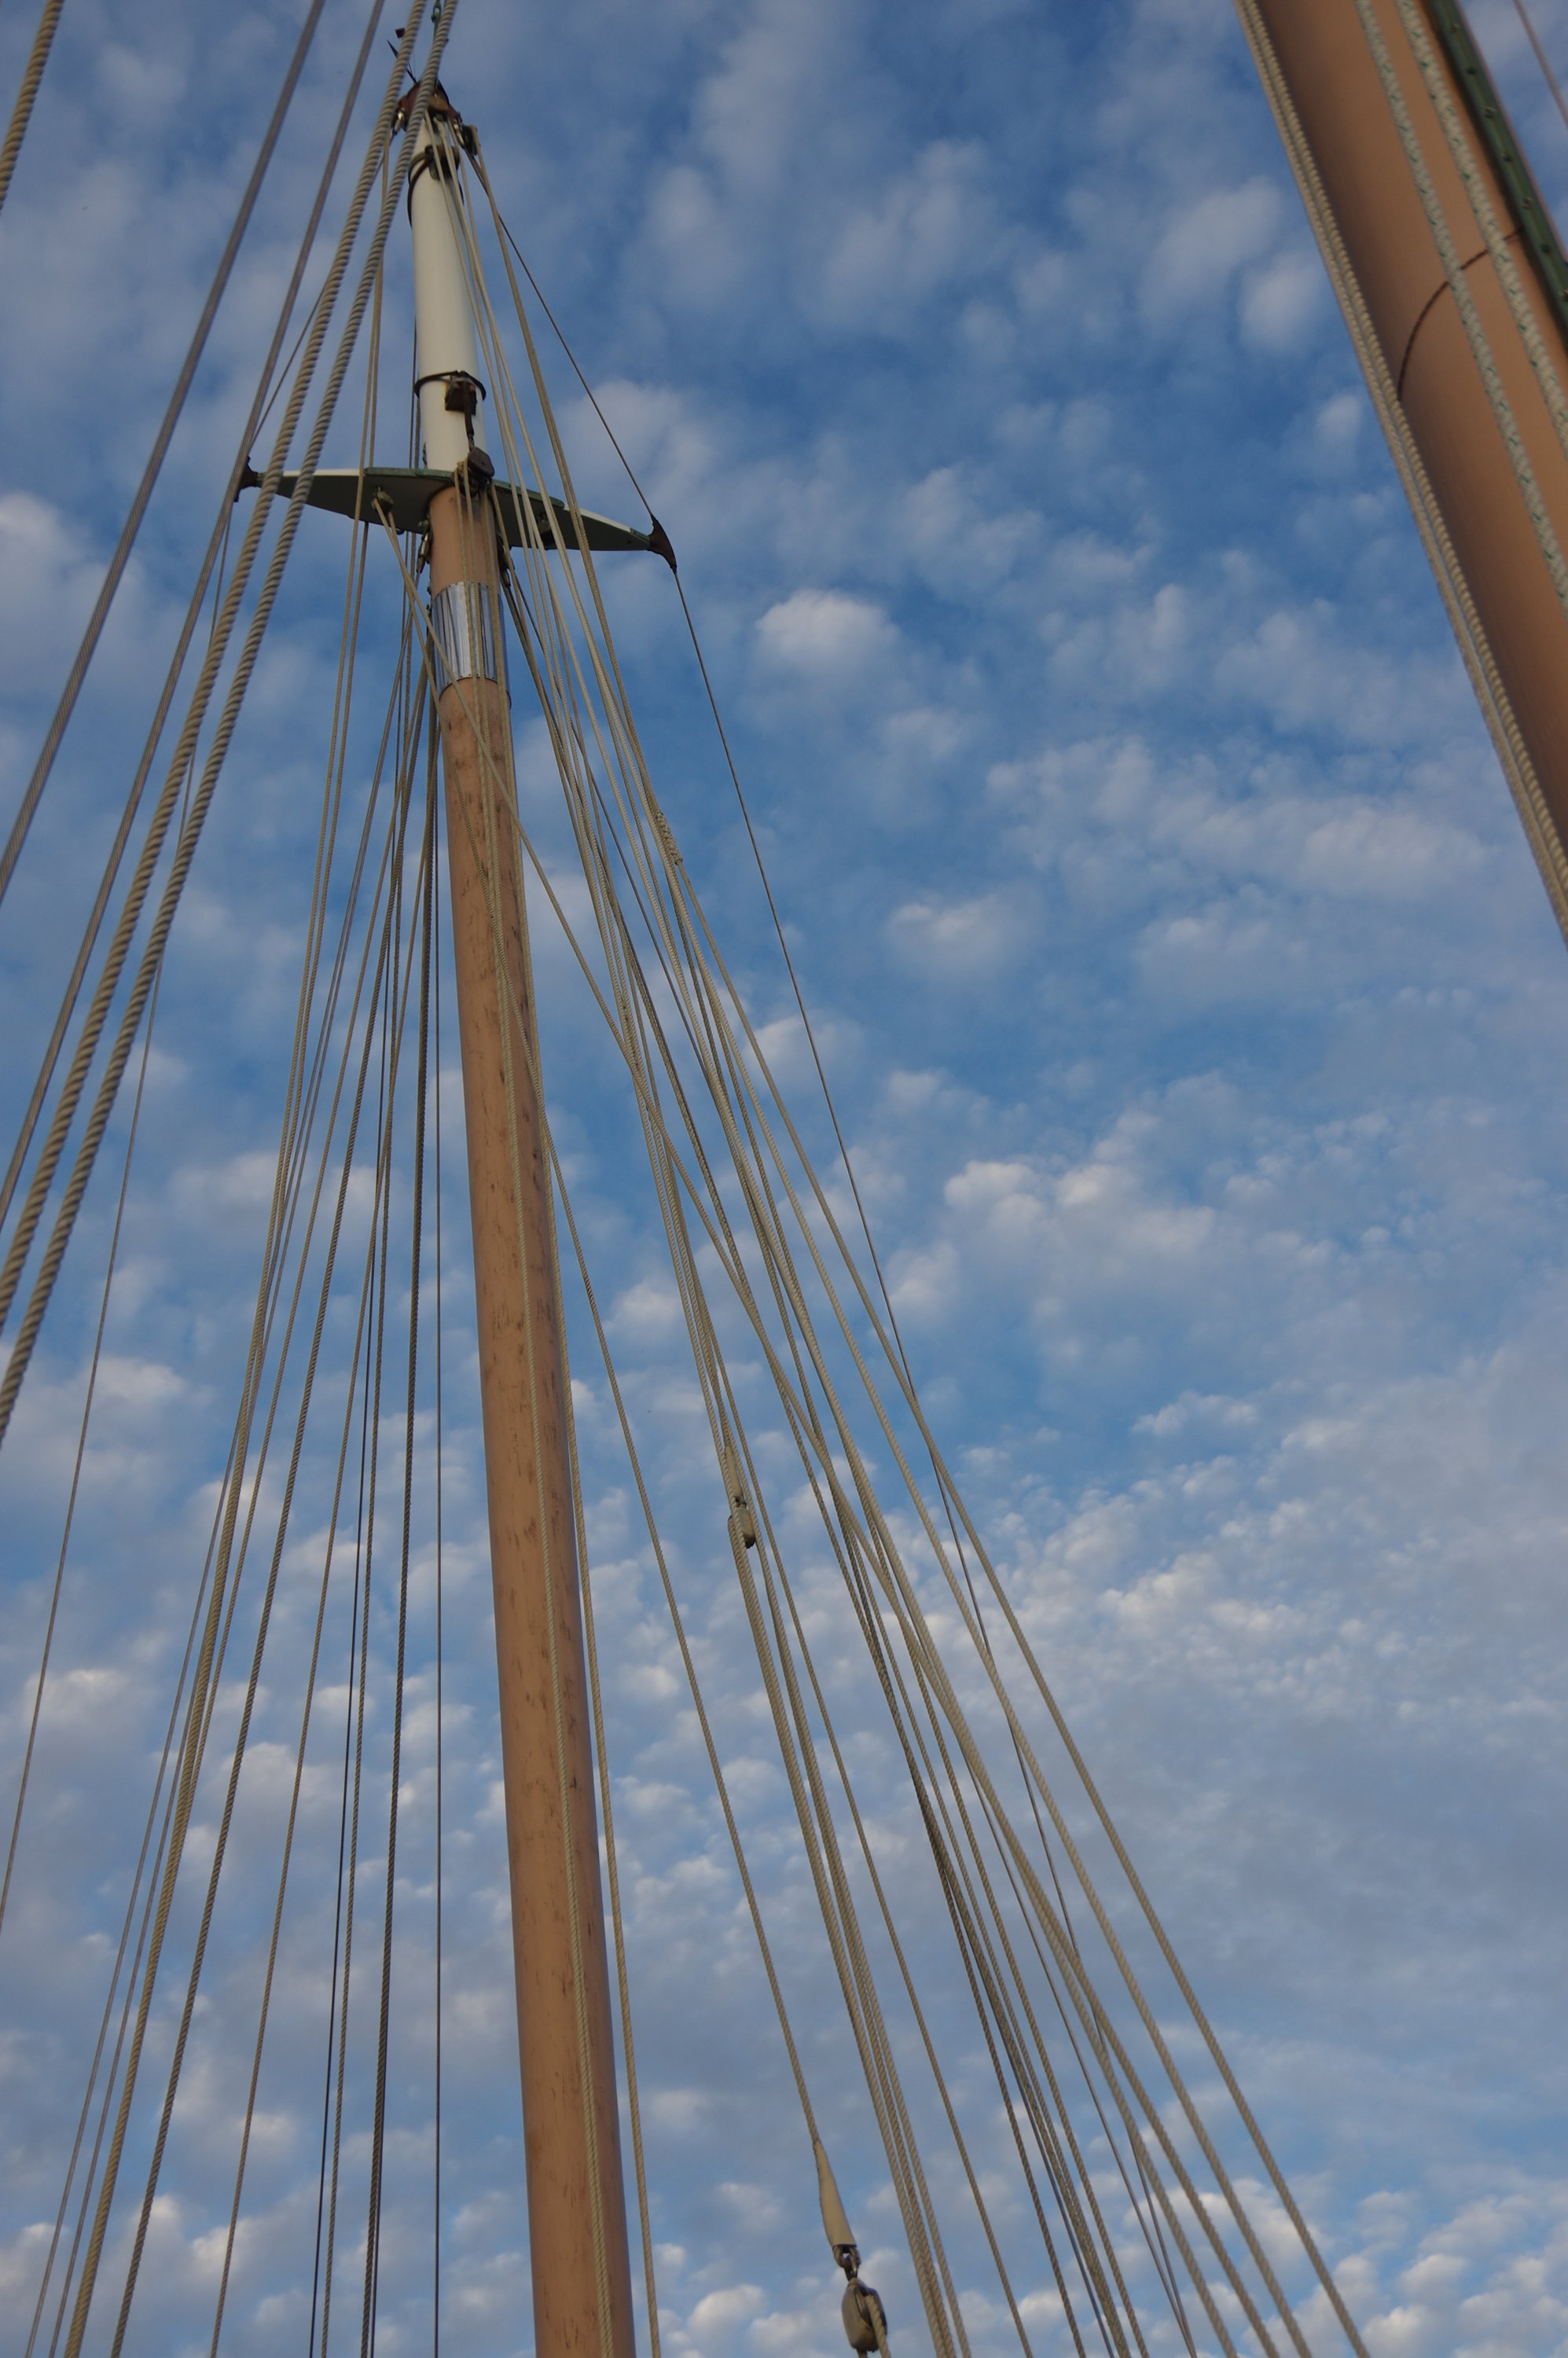 masts in the sky